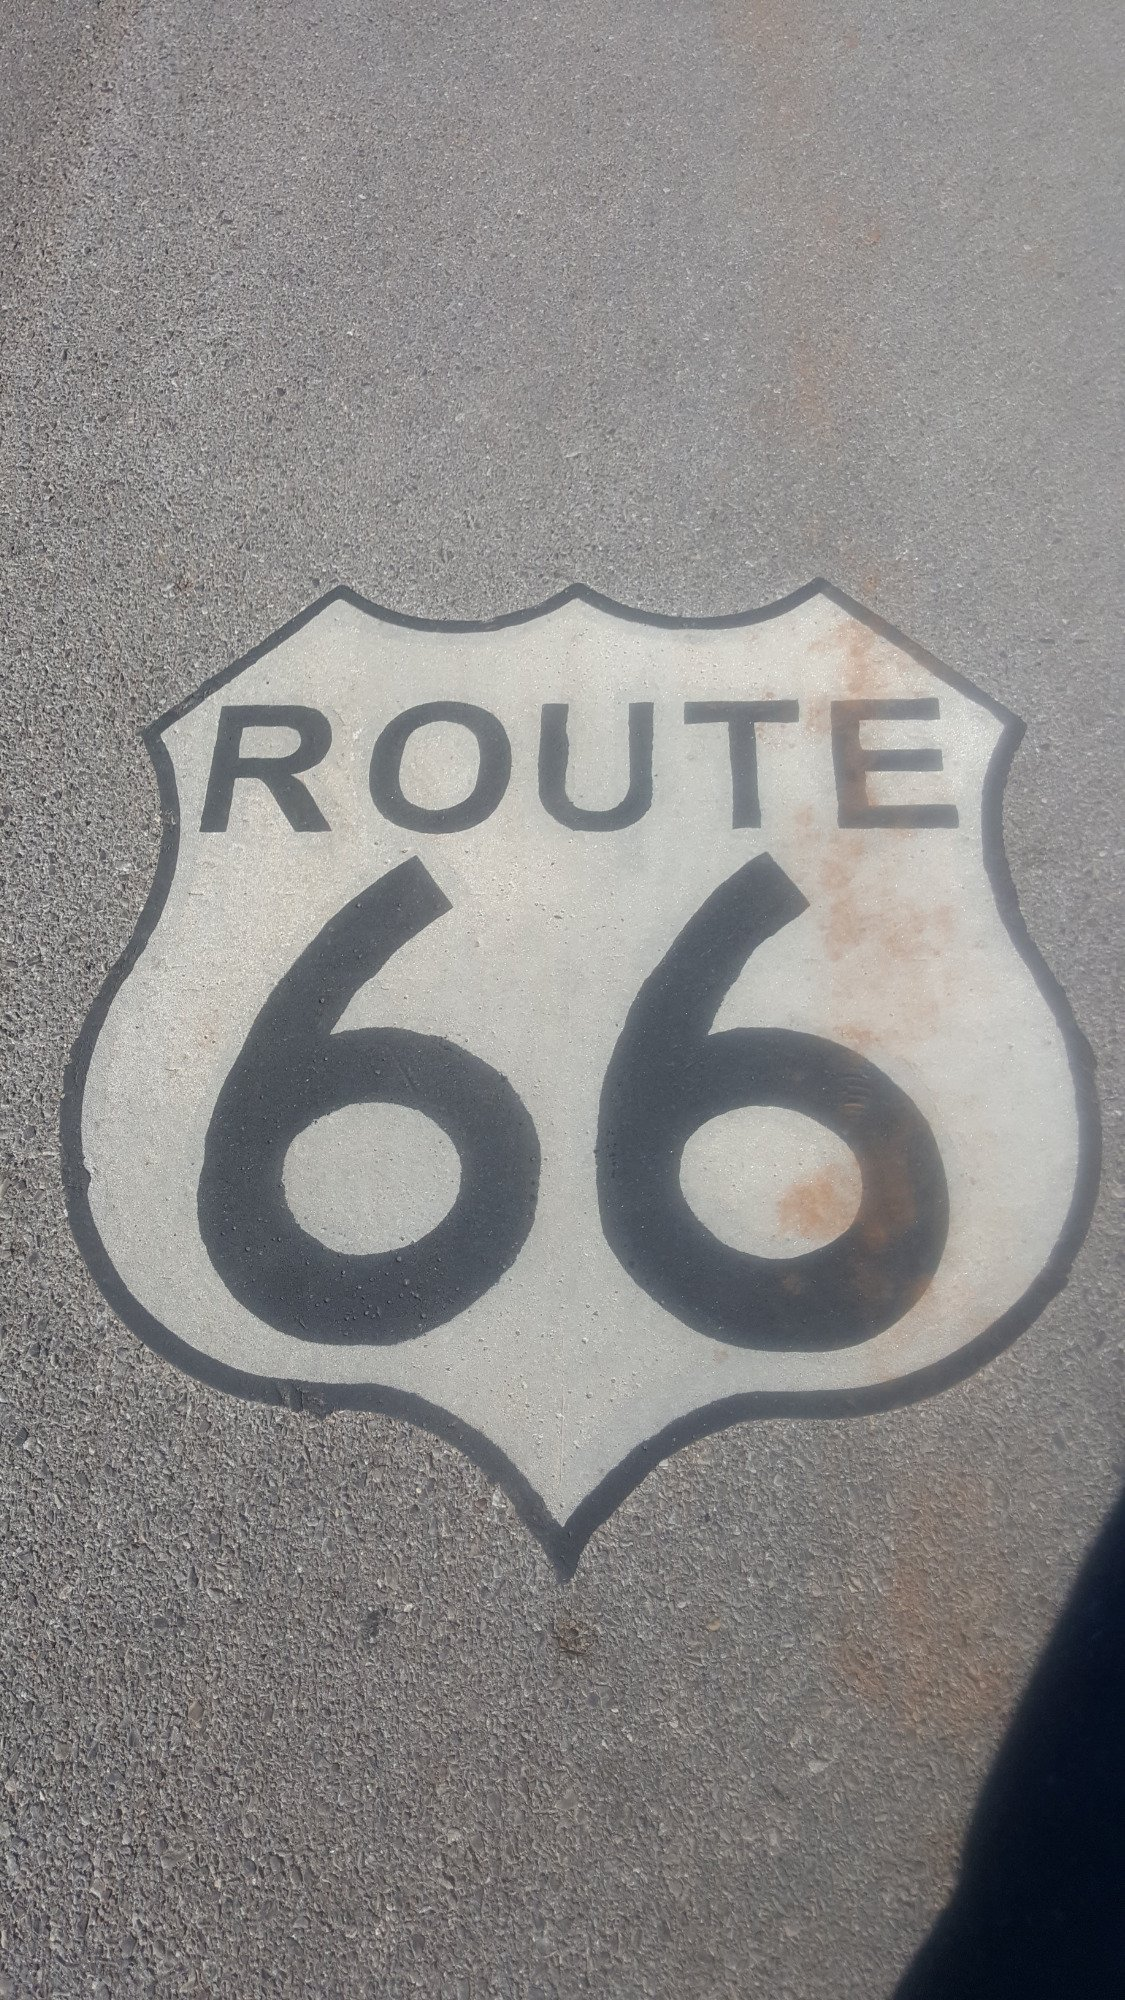 The real Route 66!